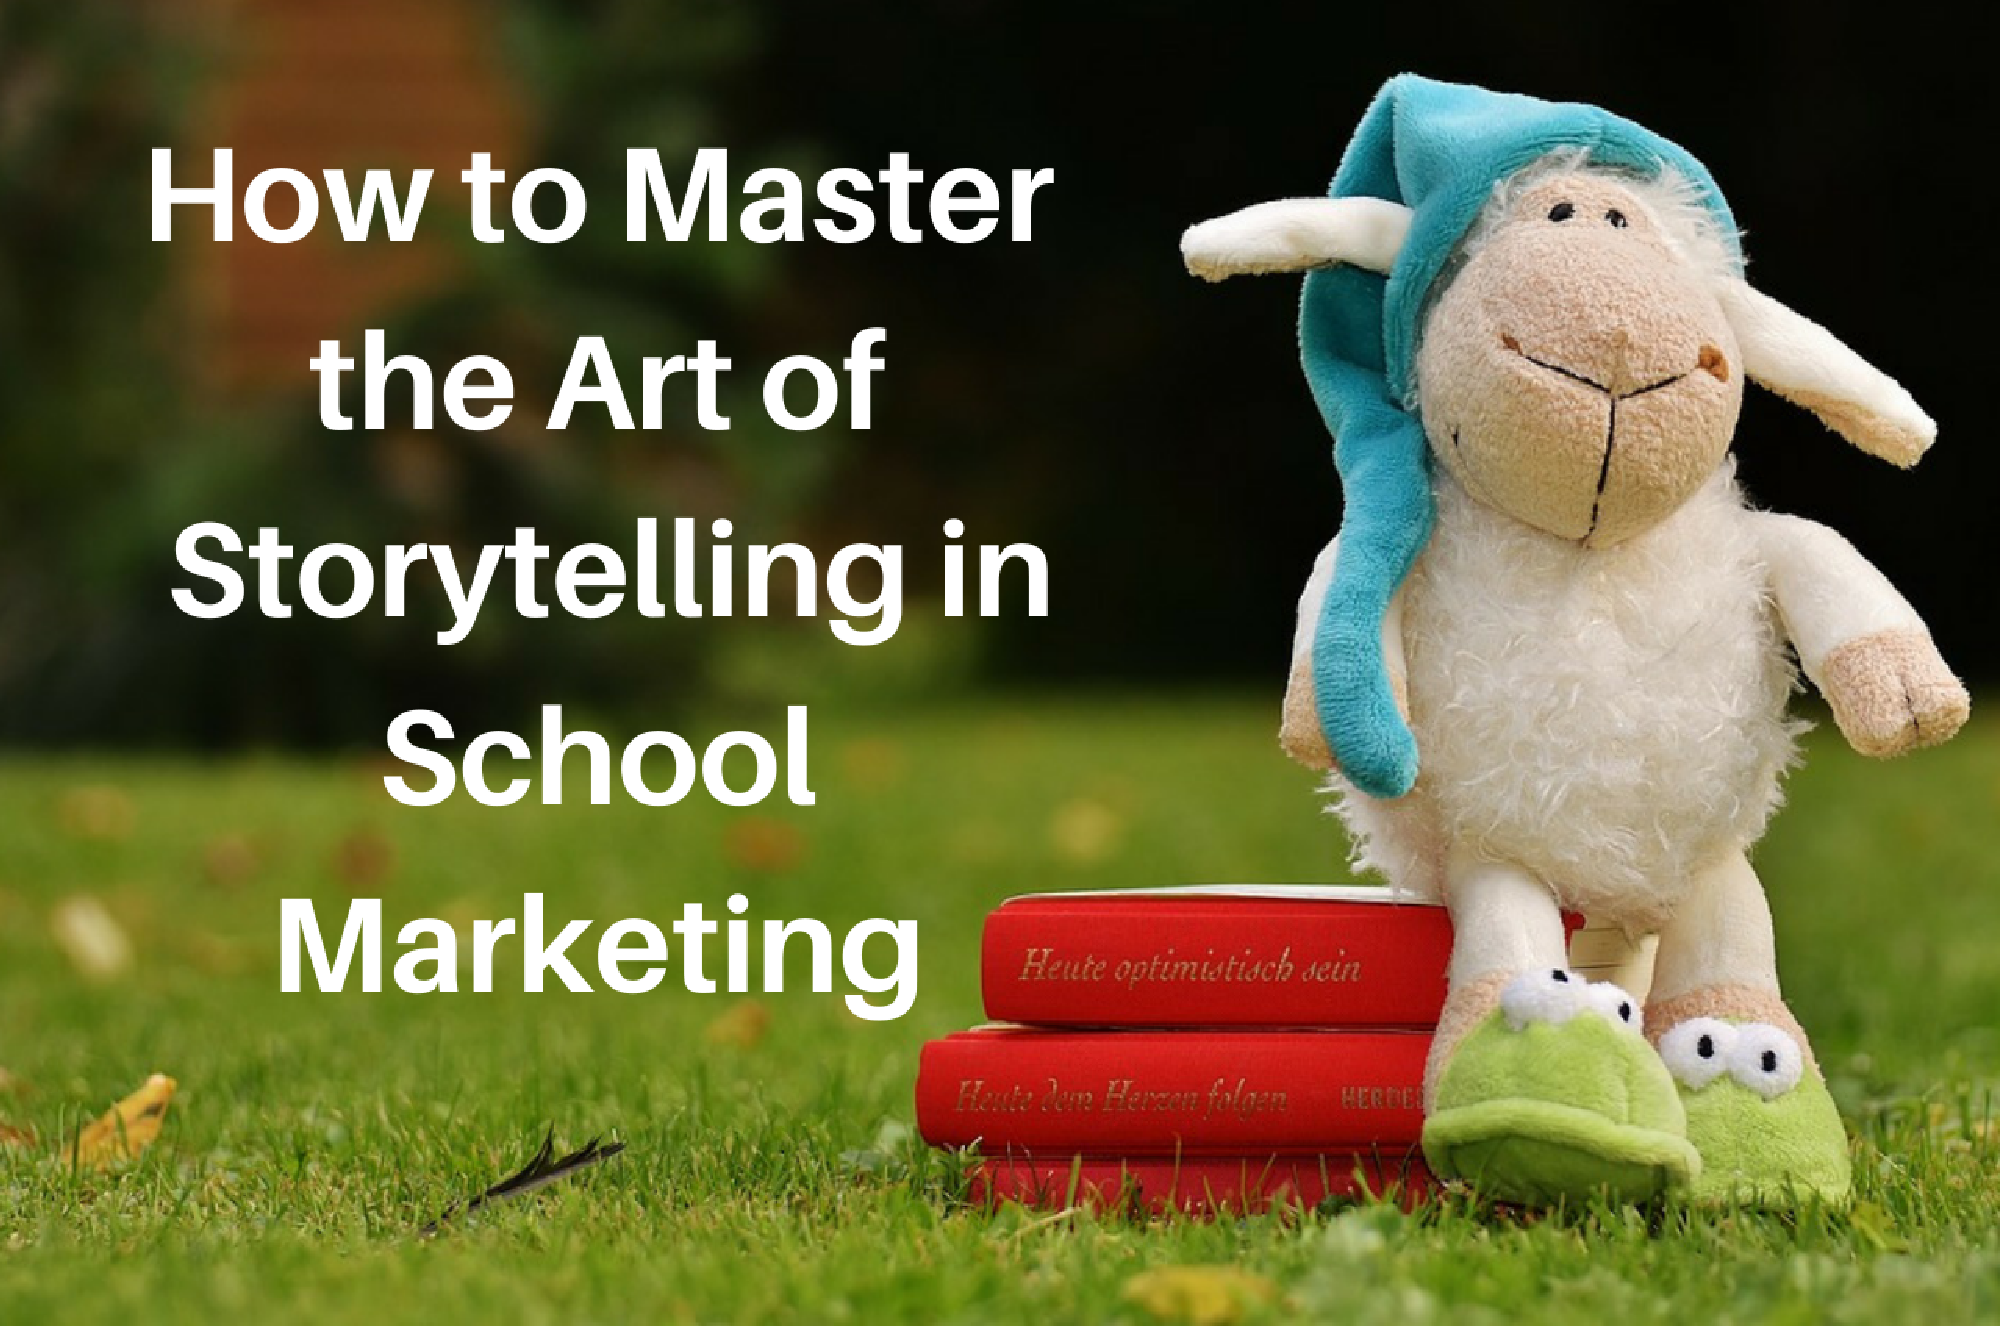 How to Master the Art of Storytelling in School Marketing.png